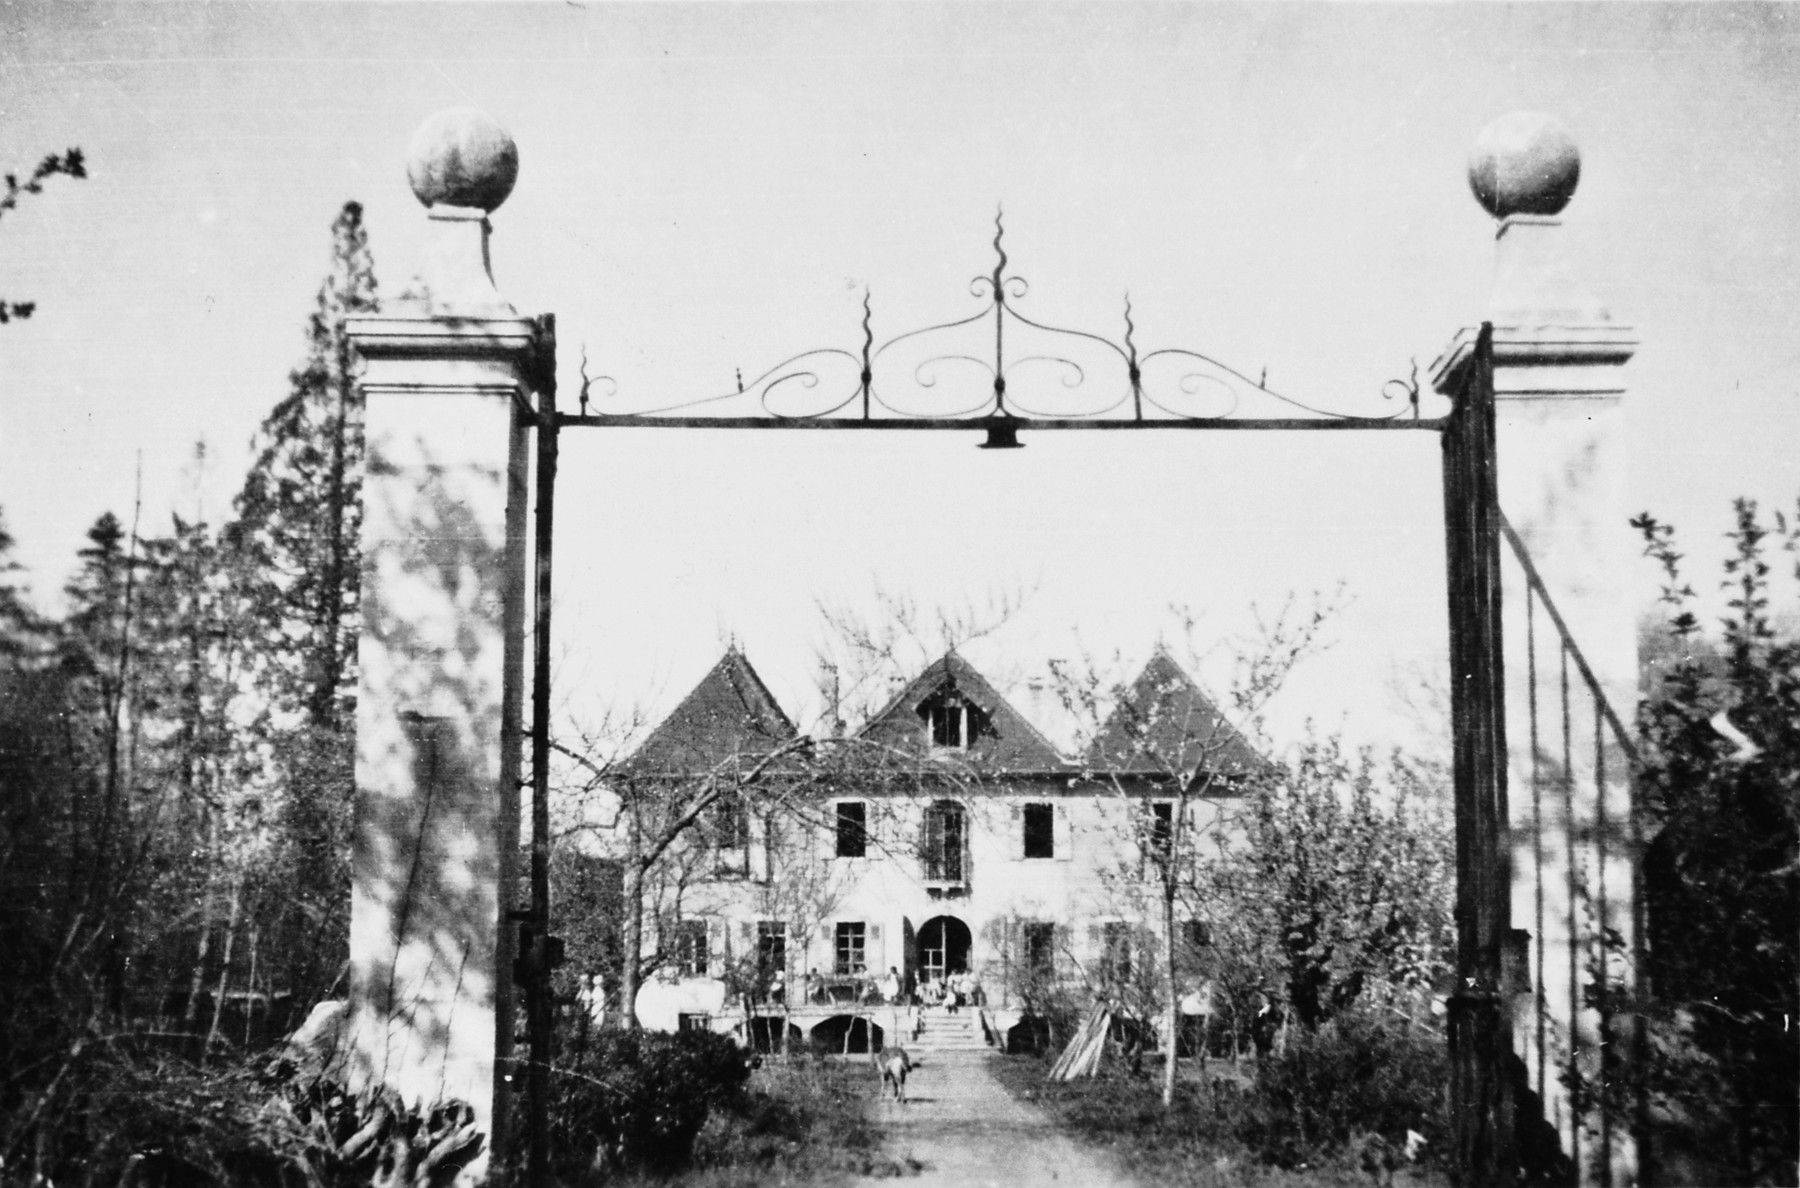 View of the entrance to the Pringy children's home, operated by the Swiss Red Cross.